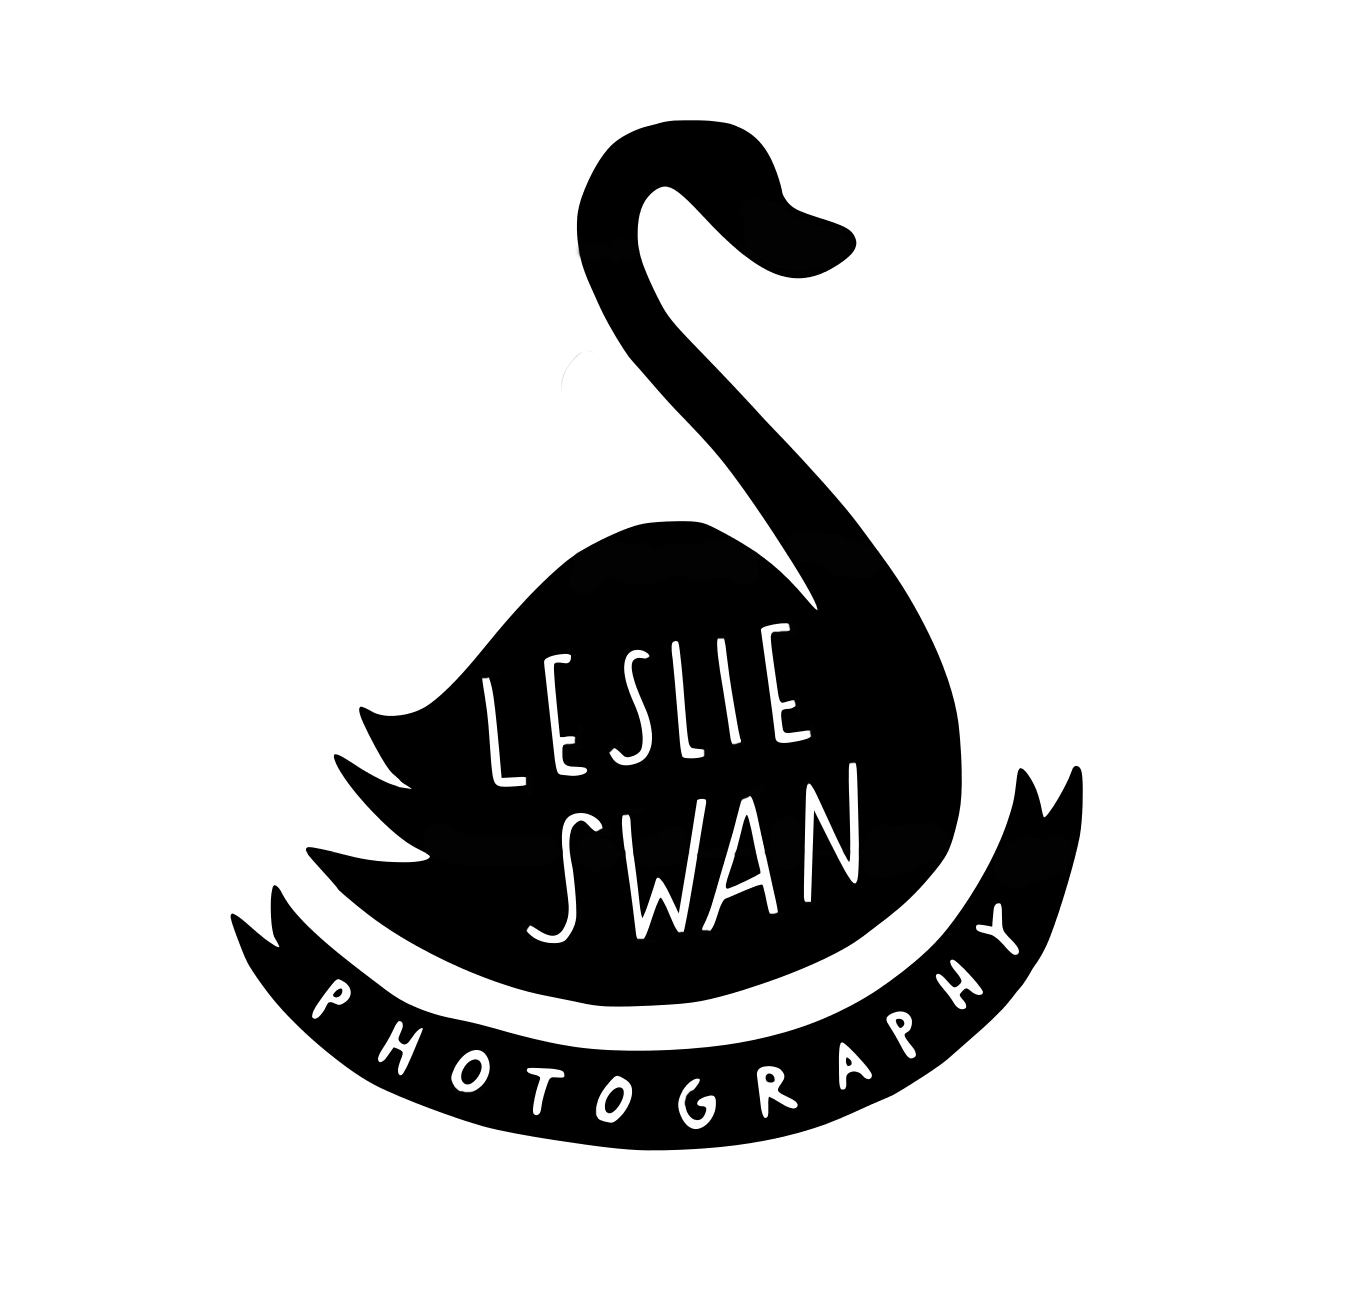 LESLIE SWAN PHOTOGRAPHY